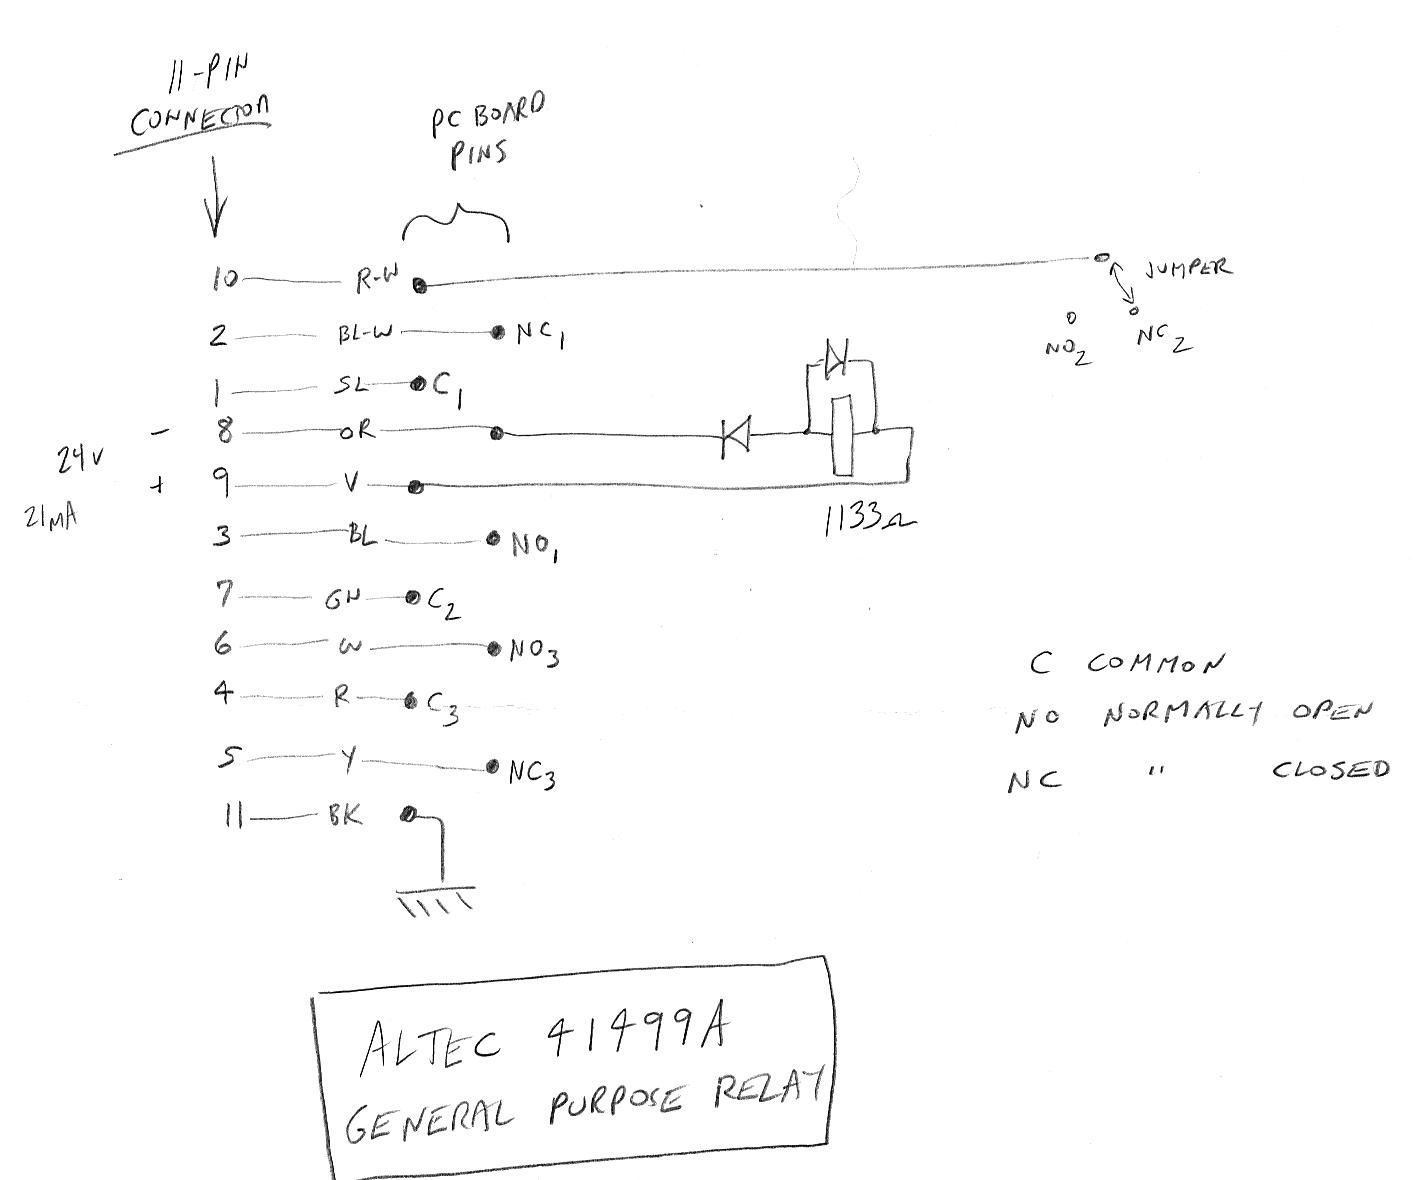 Telephone Technical References Relay No Nc Connection Altec 41499a General Purpose Sketch